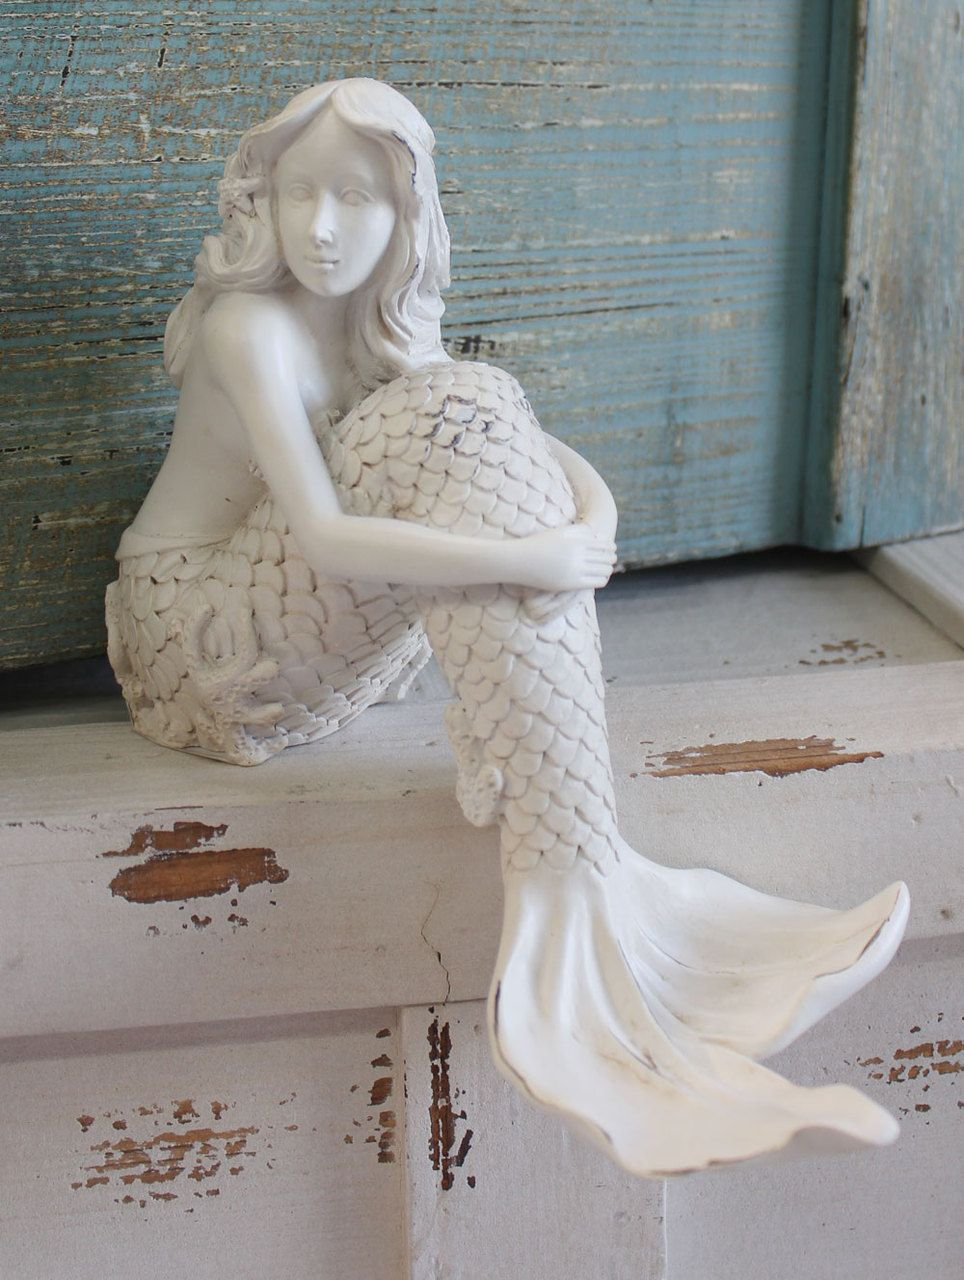 Seashell Bedroom Decor Mermaid Shelf Sitter Resin Figurine Bathrooms Decor Awesome And